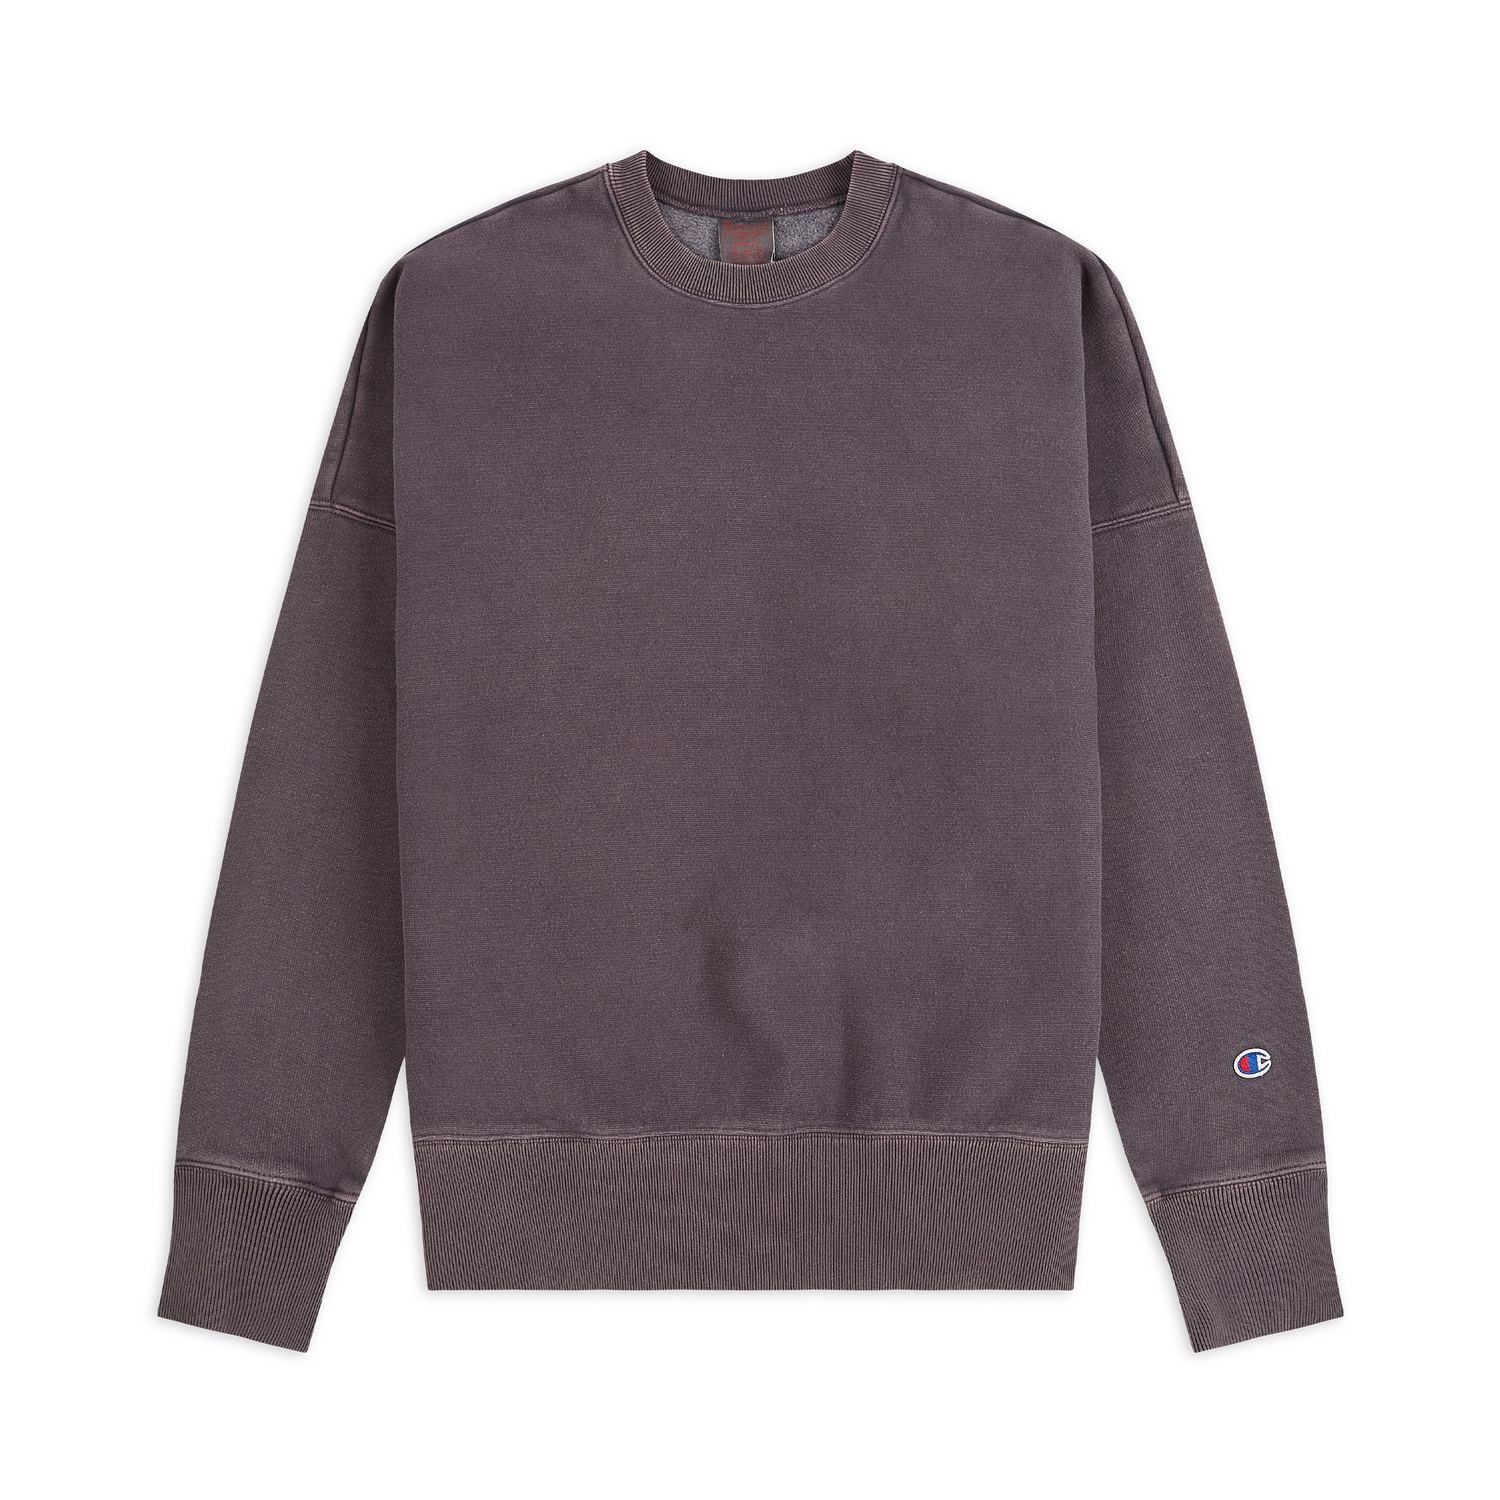 Champion Premium Acid Wash Reverse Weave Sweatshirt